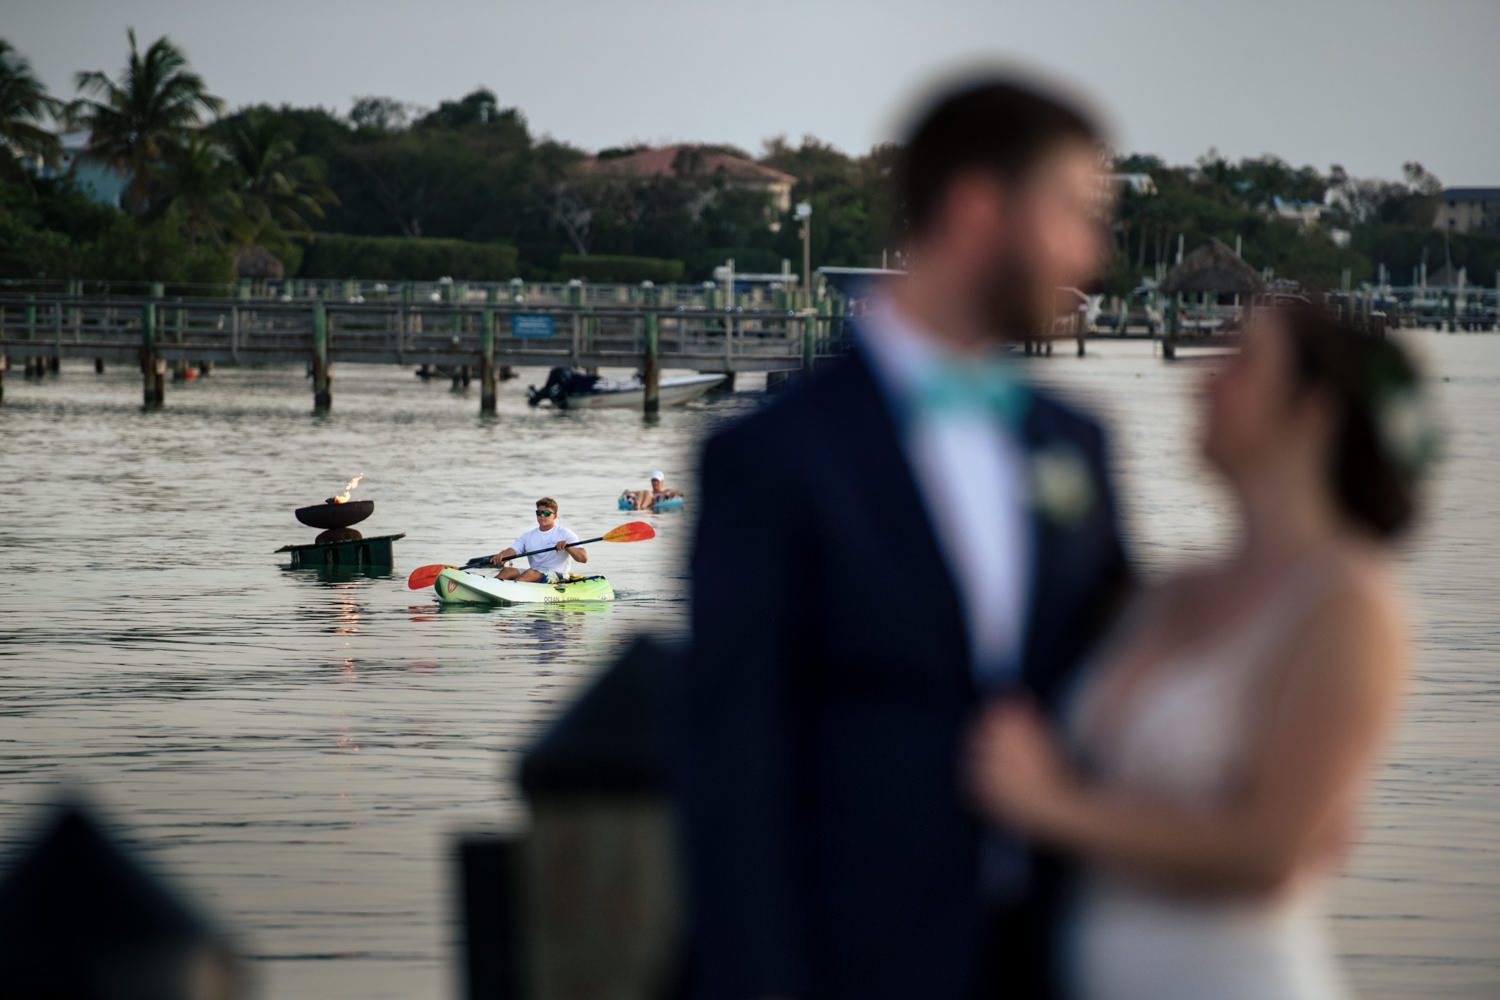 Newlywed couple standing on a pier in playa largo